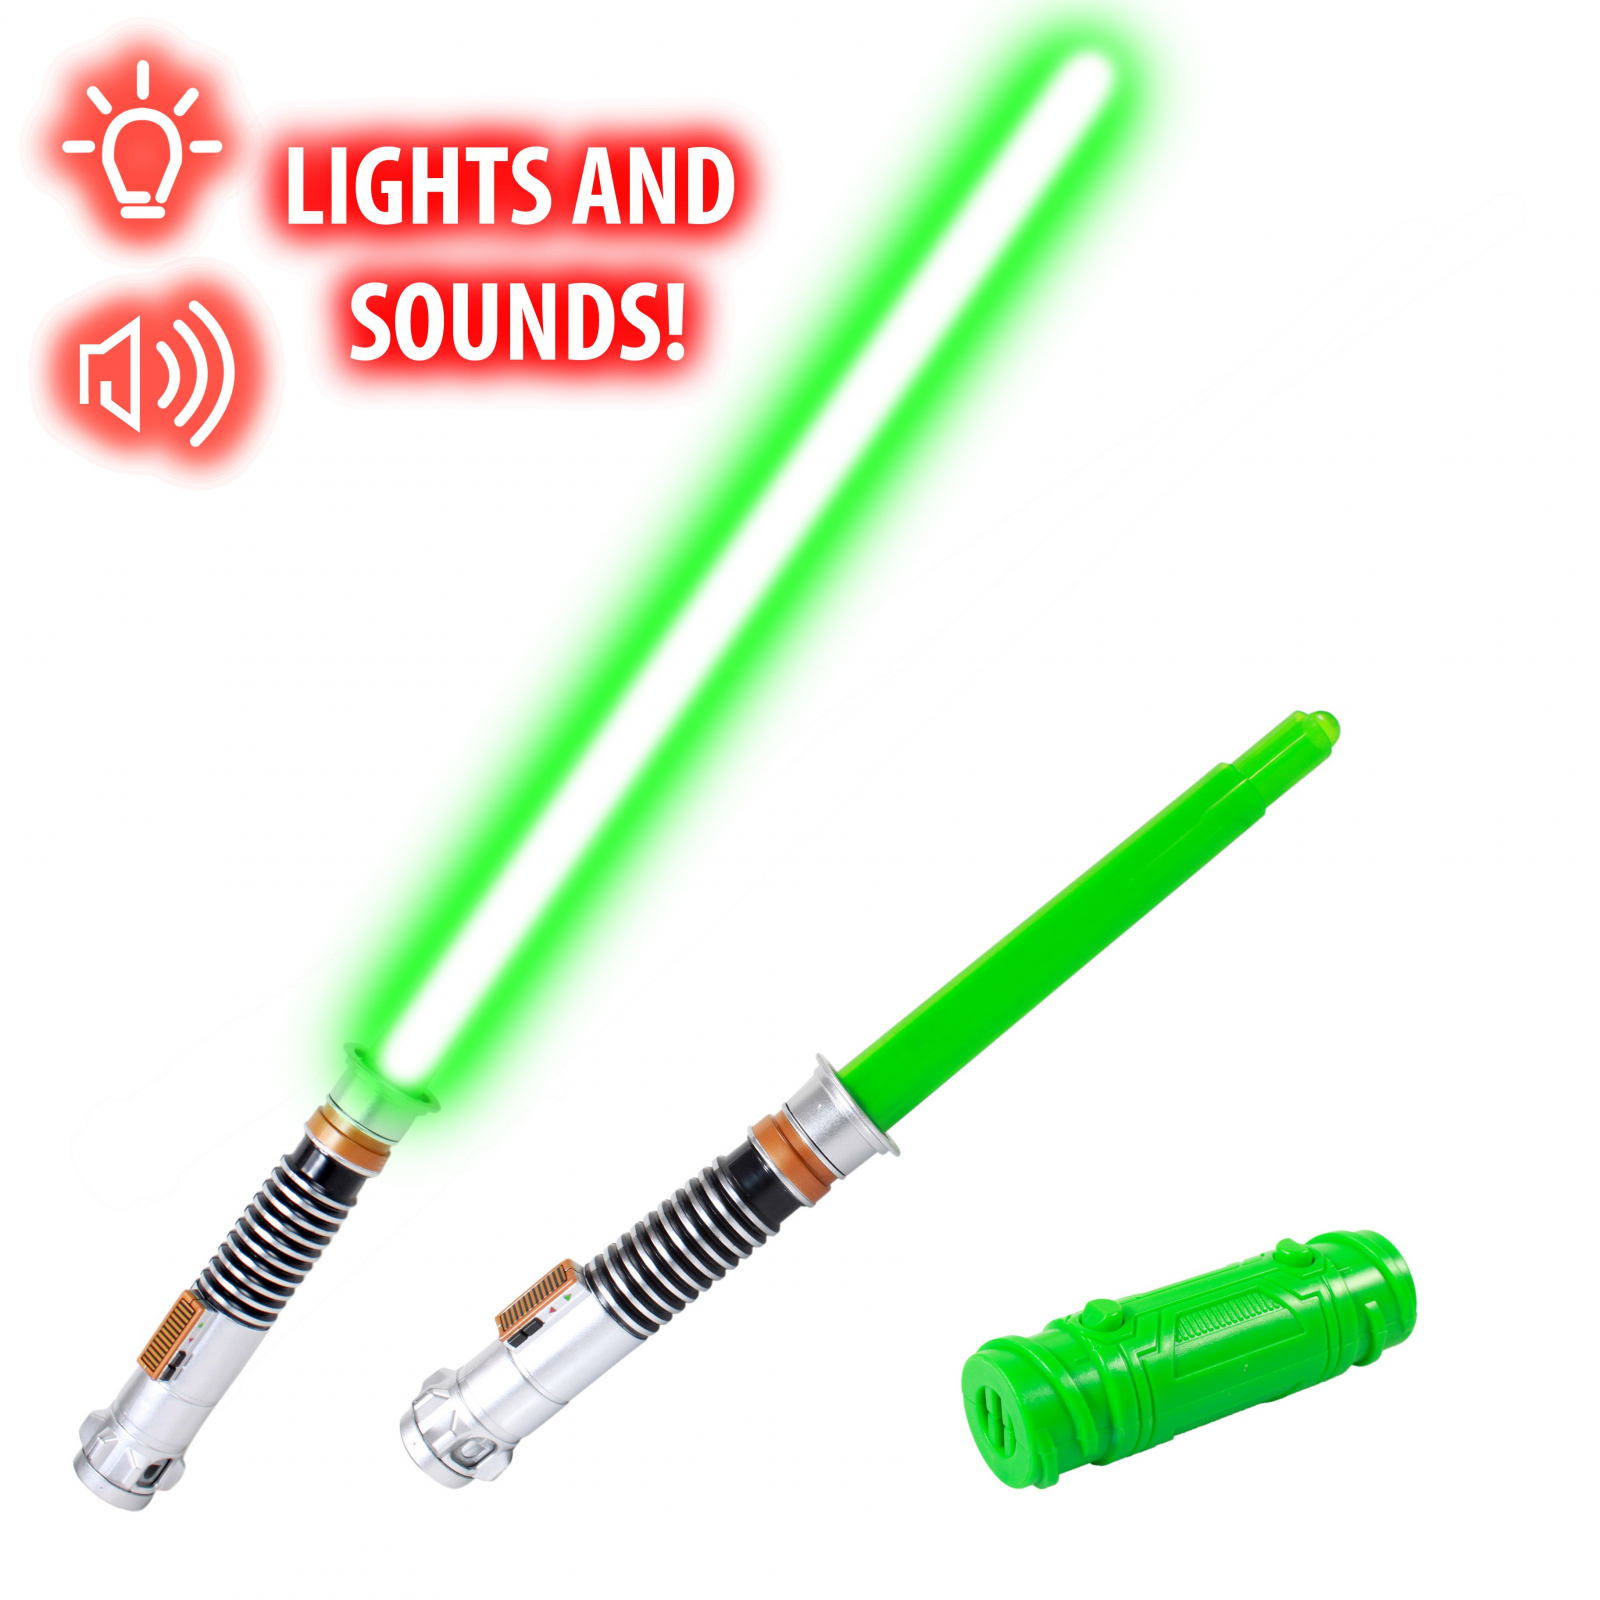 Star Wars Bladebuilders Luke Skywalker Green Lightsaber